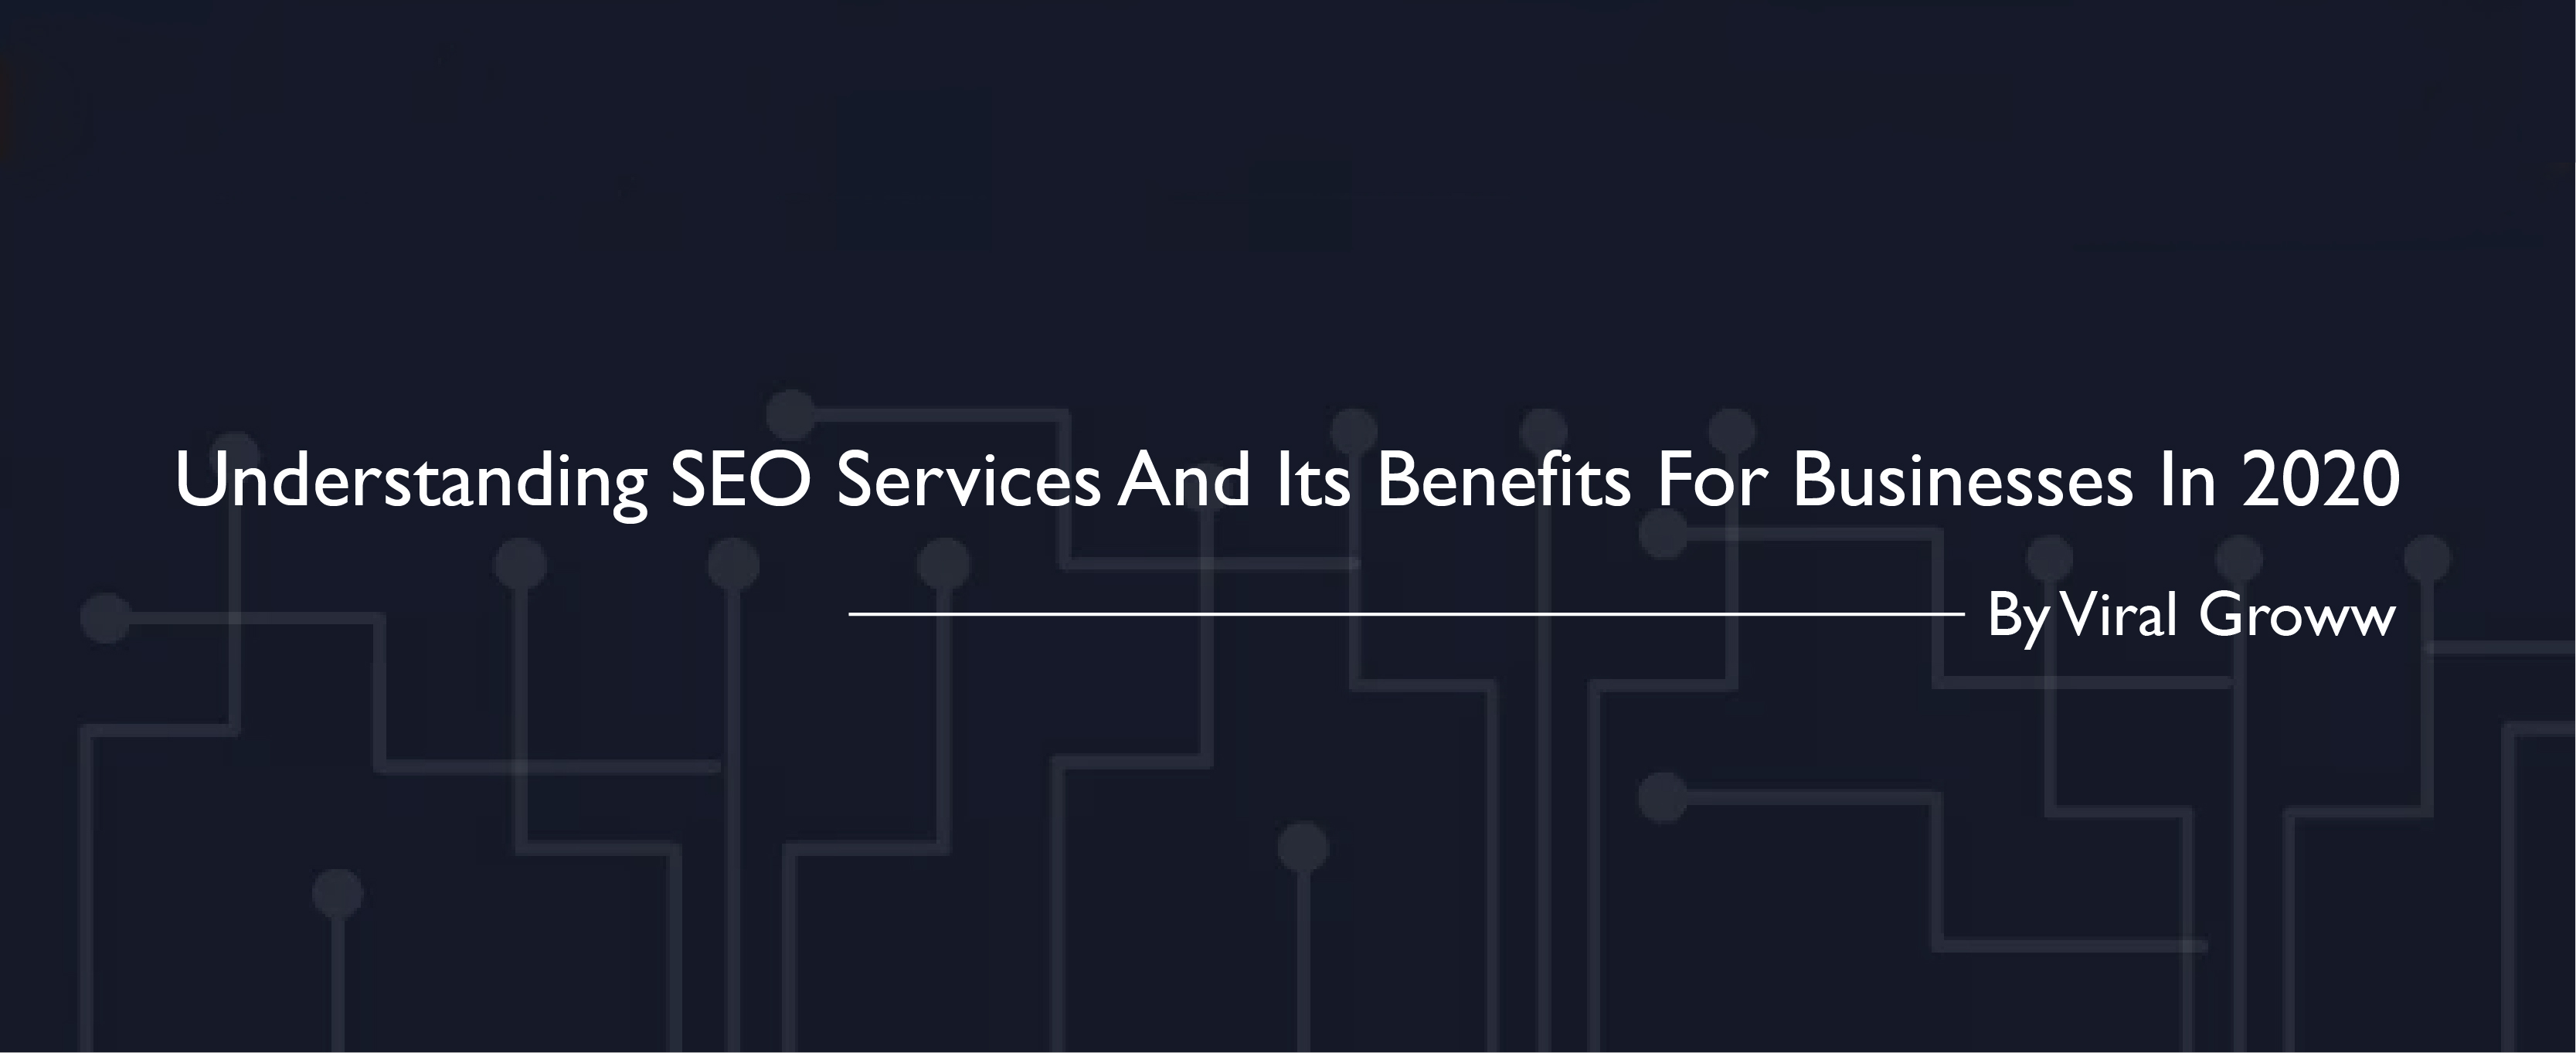 Understanding SEO Services and Its Benefits For Businesses in 2020